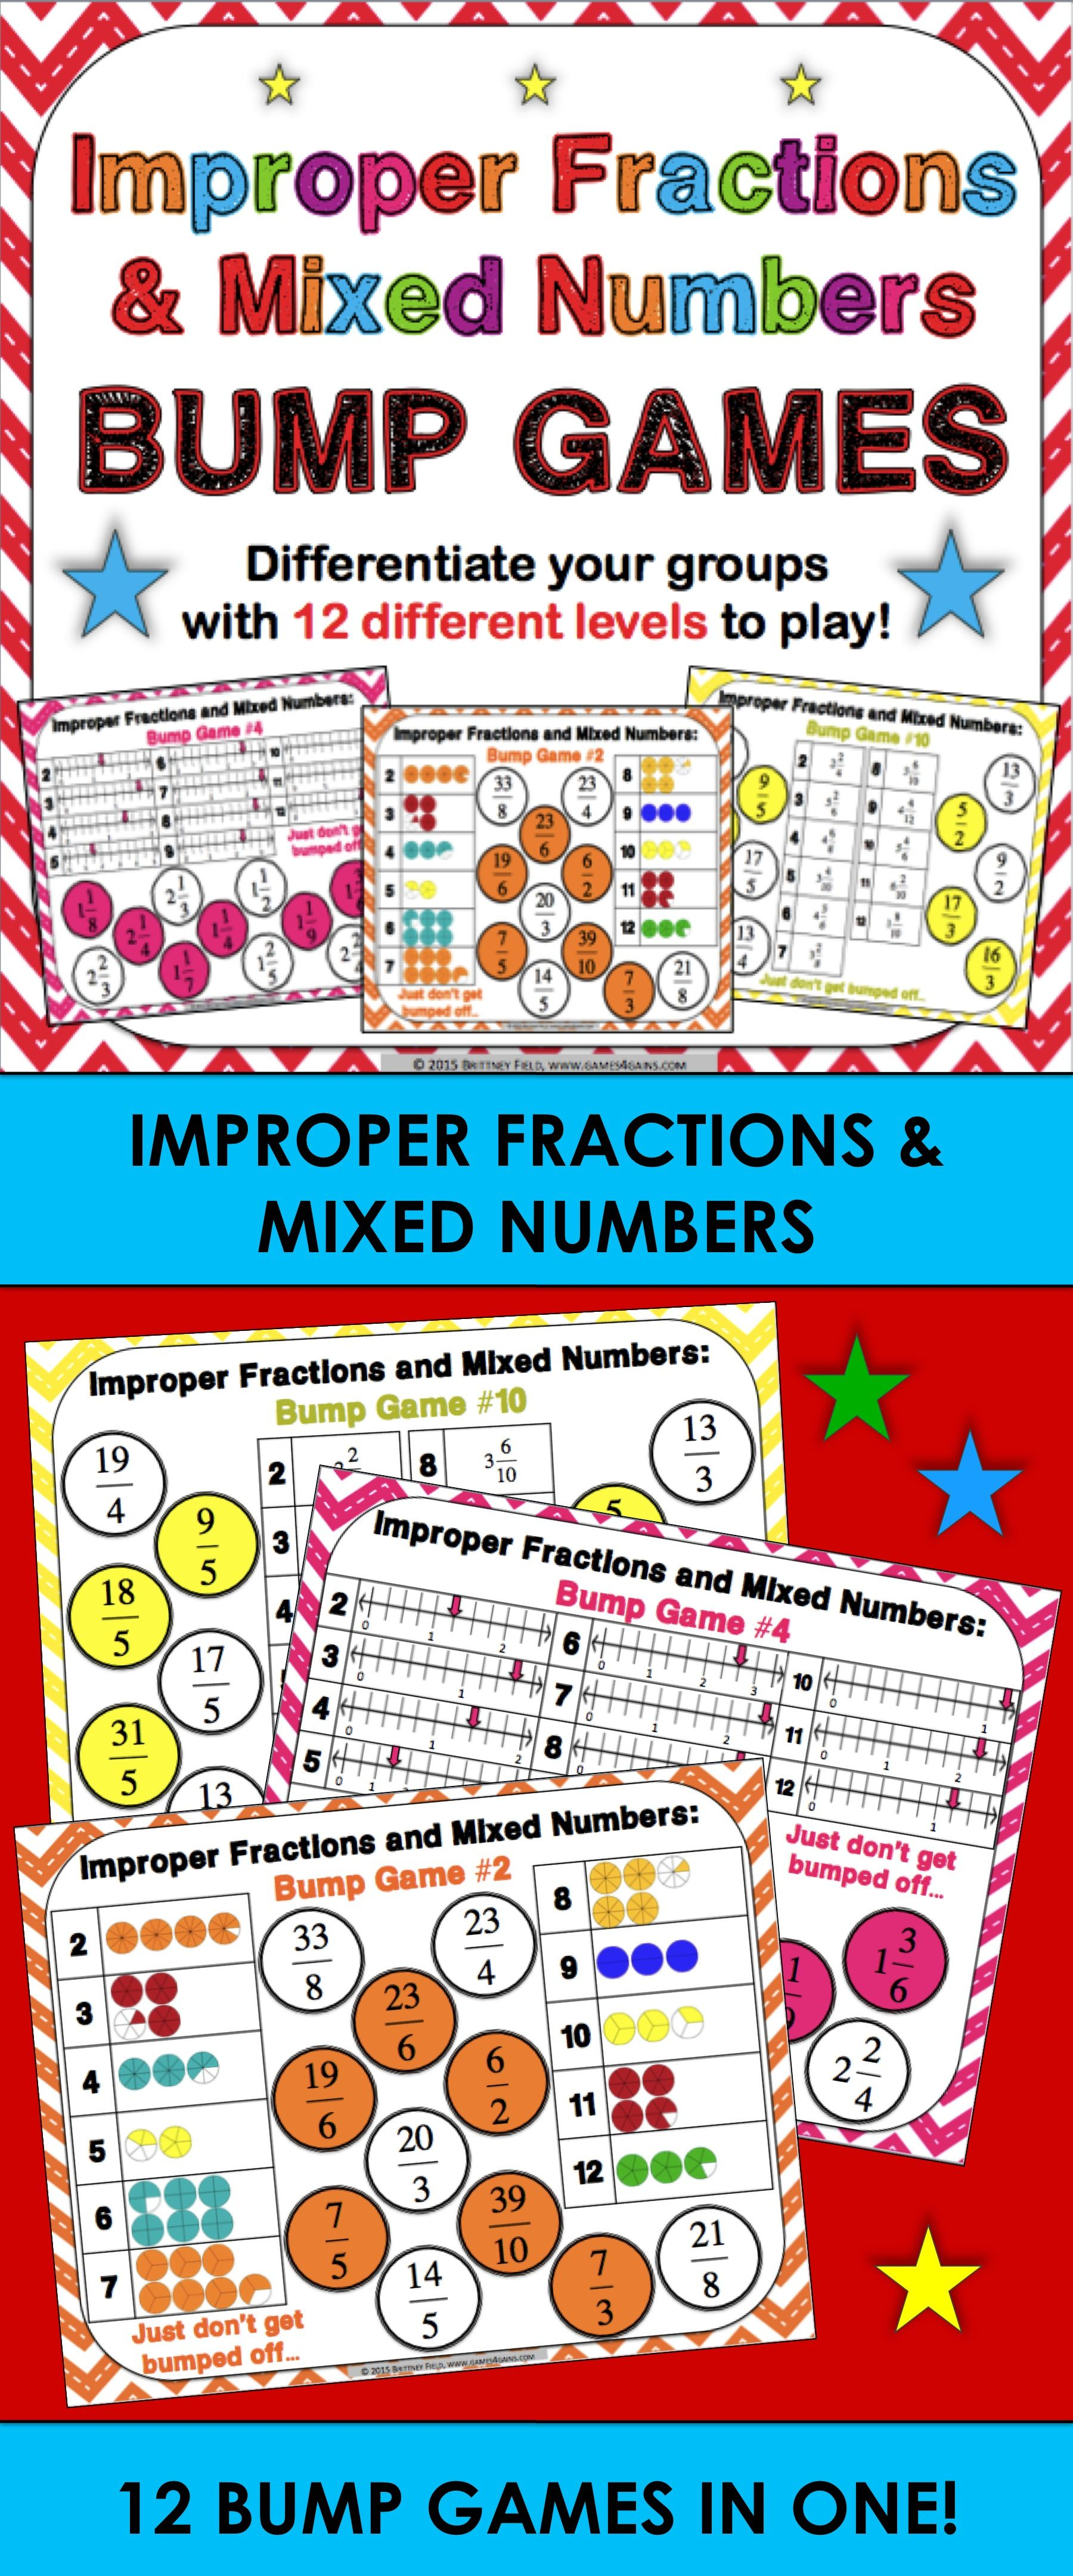 13 Mixed Numbers And Improper Fractions Worksheet